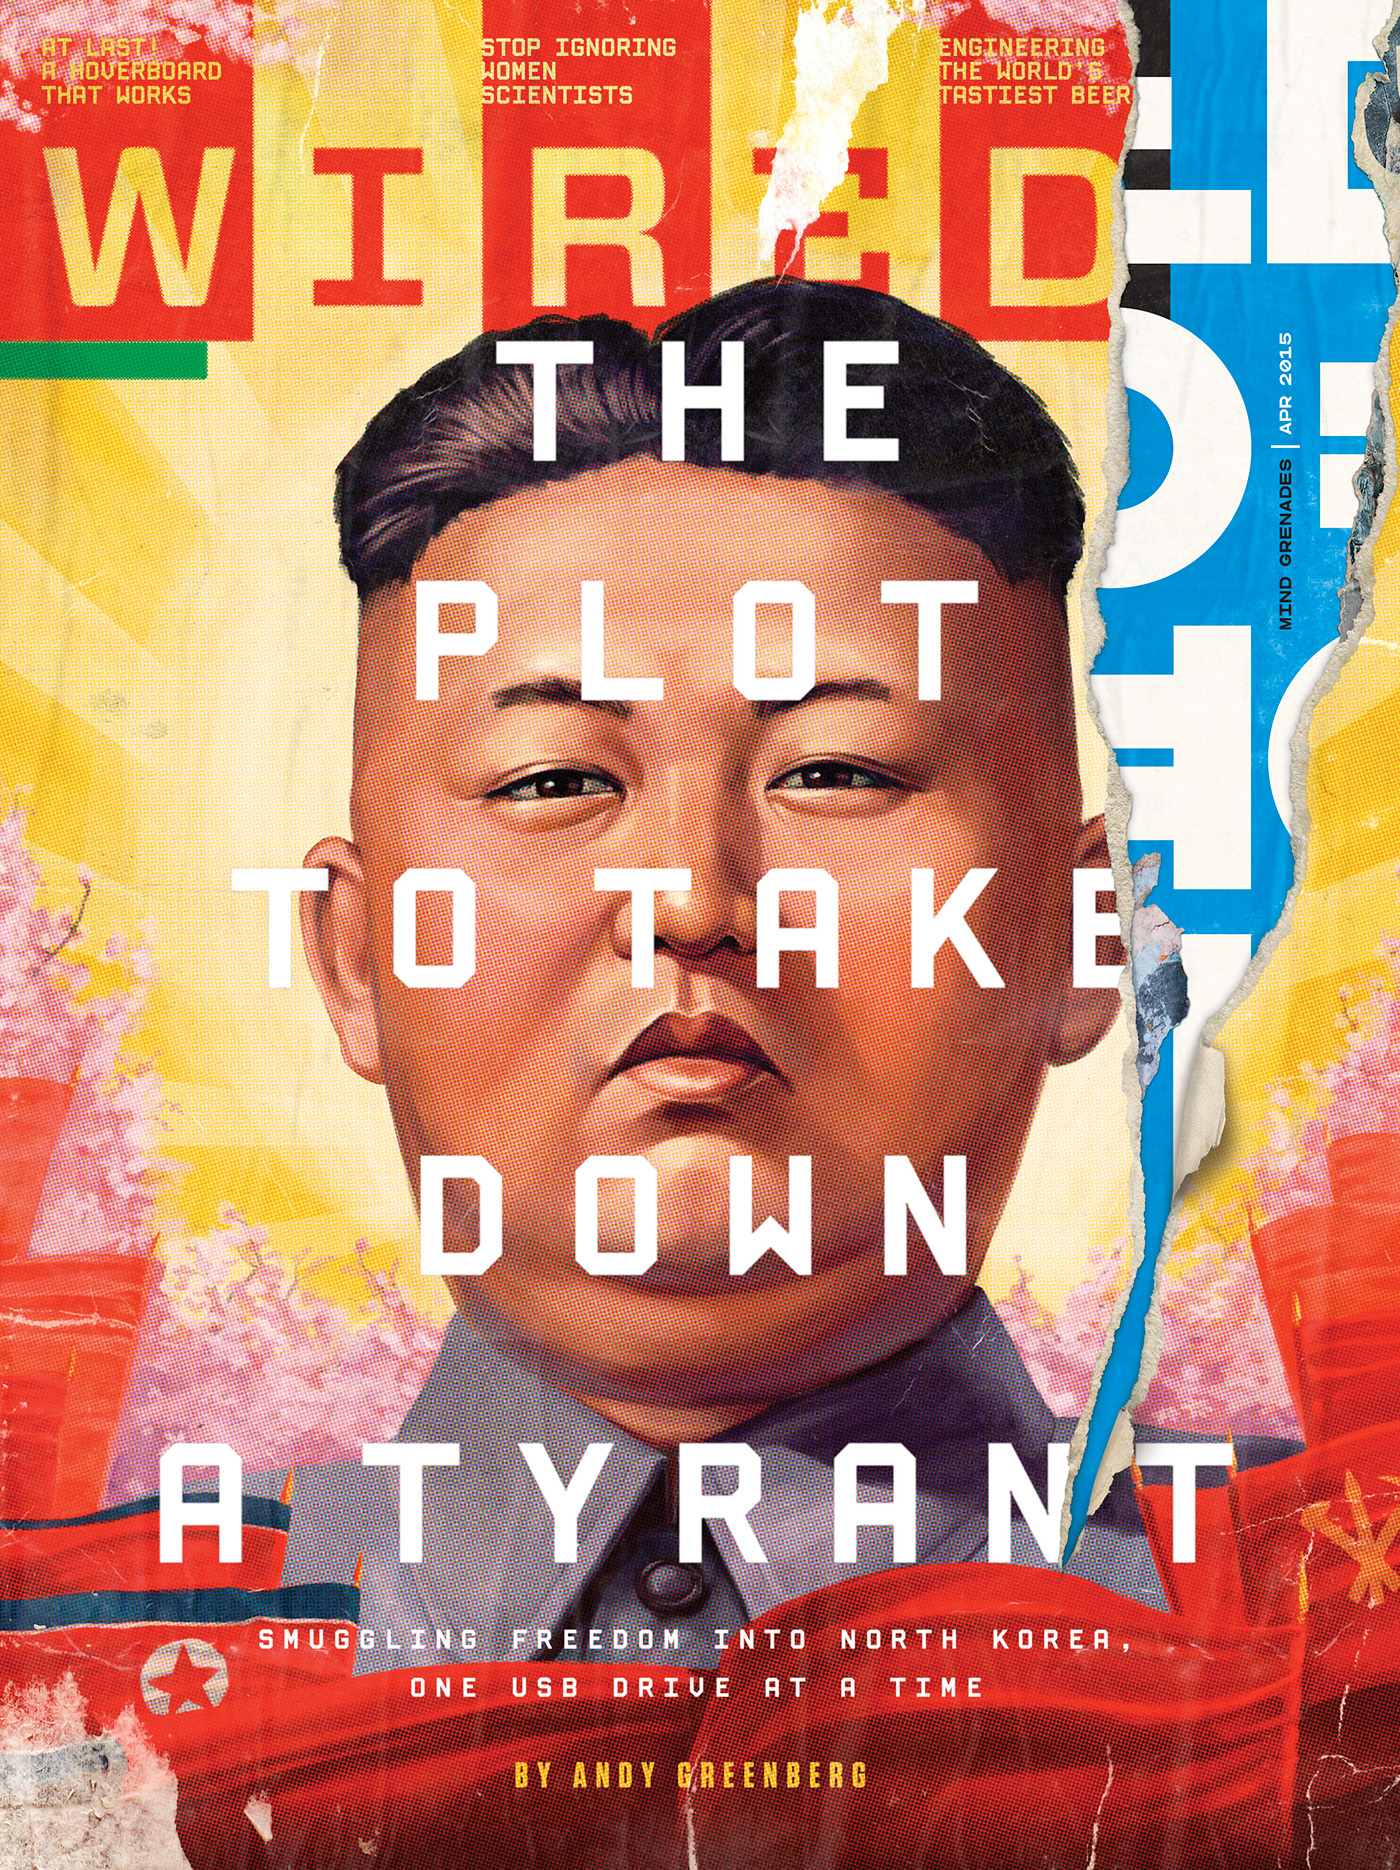 Wired Magazine Subscription Discount | Culture Meets Design - DiscountMags.com